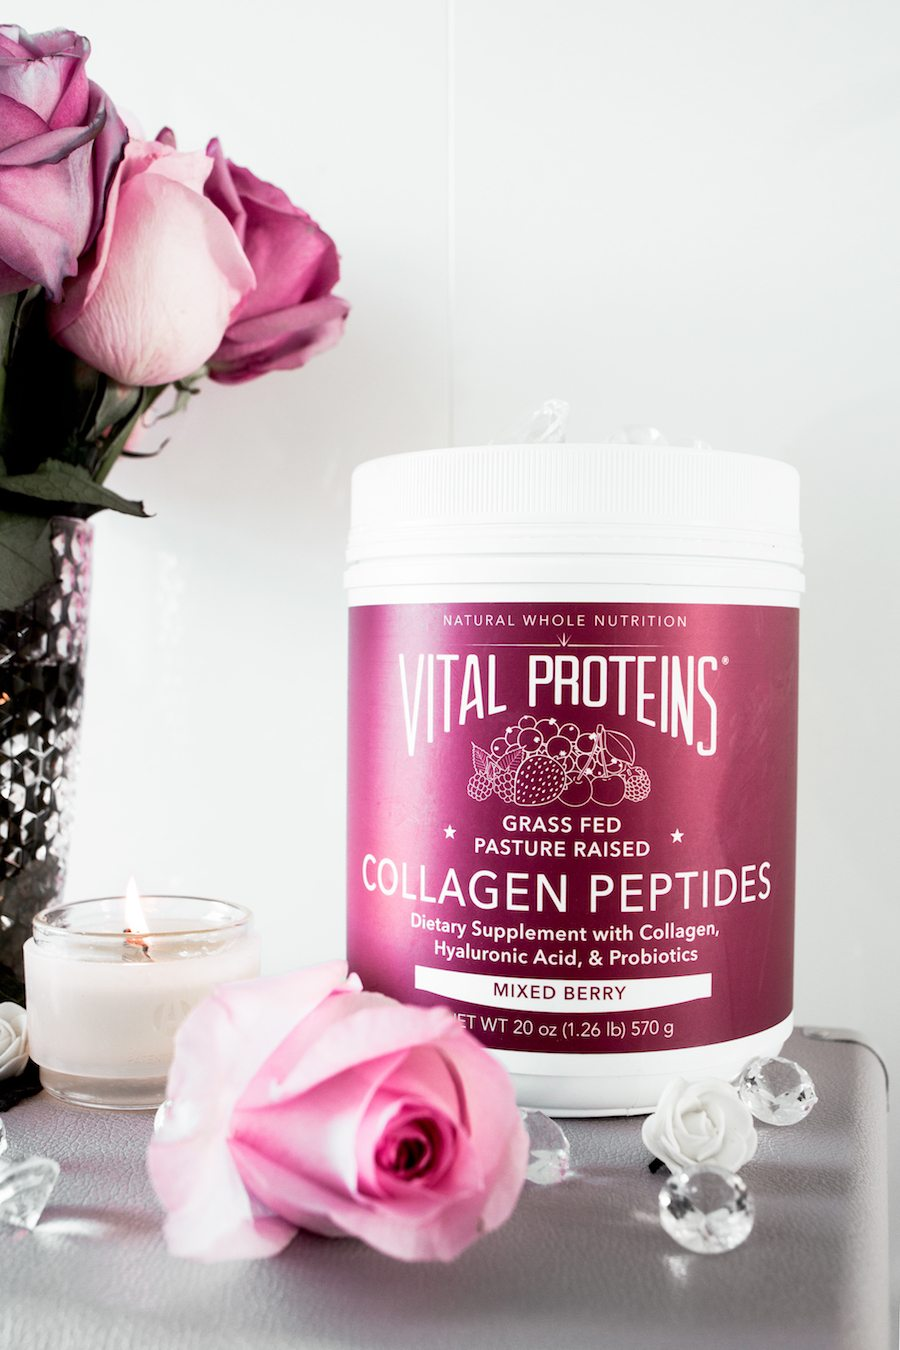 Vital Proteins Mixed Berry Collagen Peptides by The Skinny Confidential